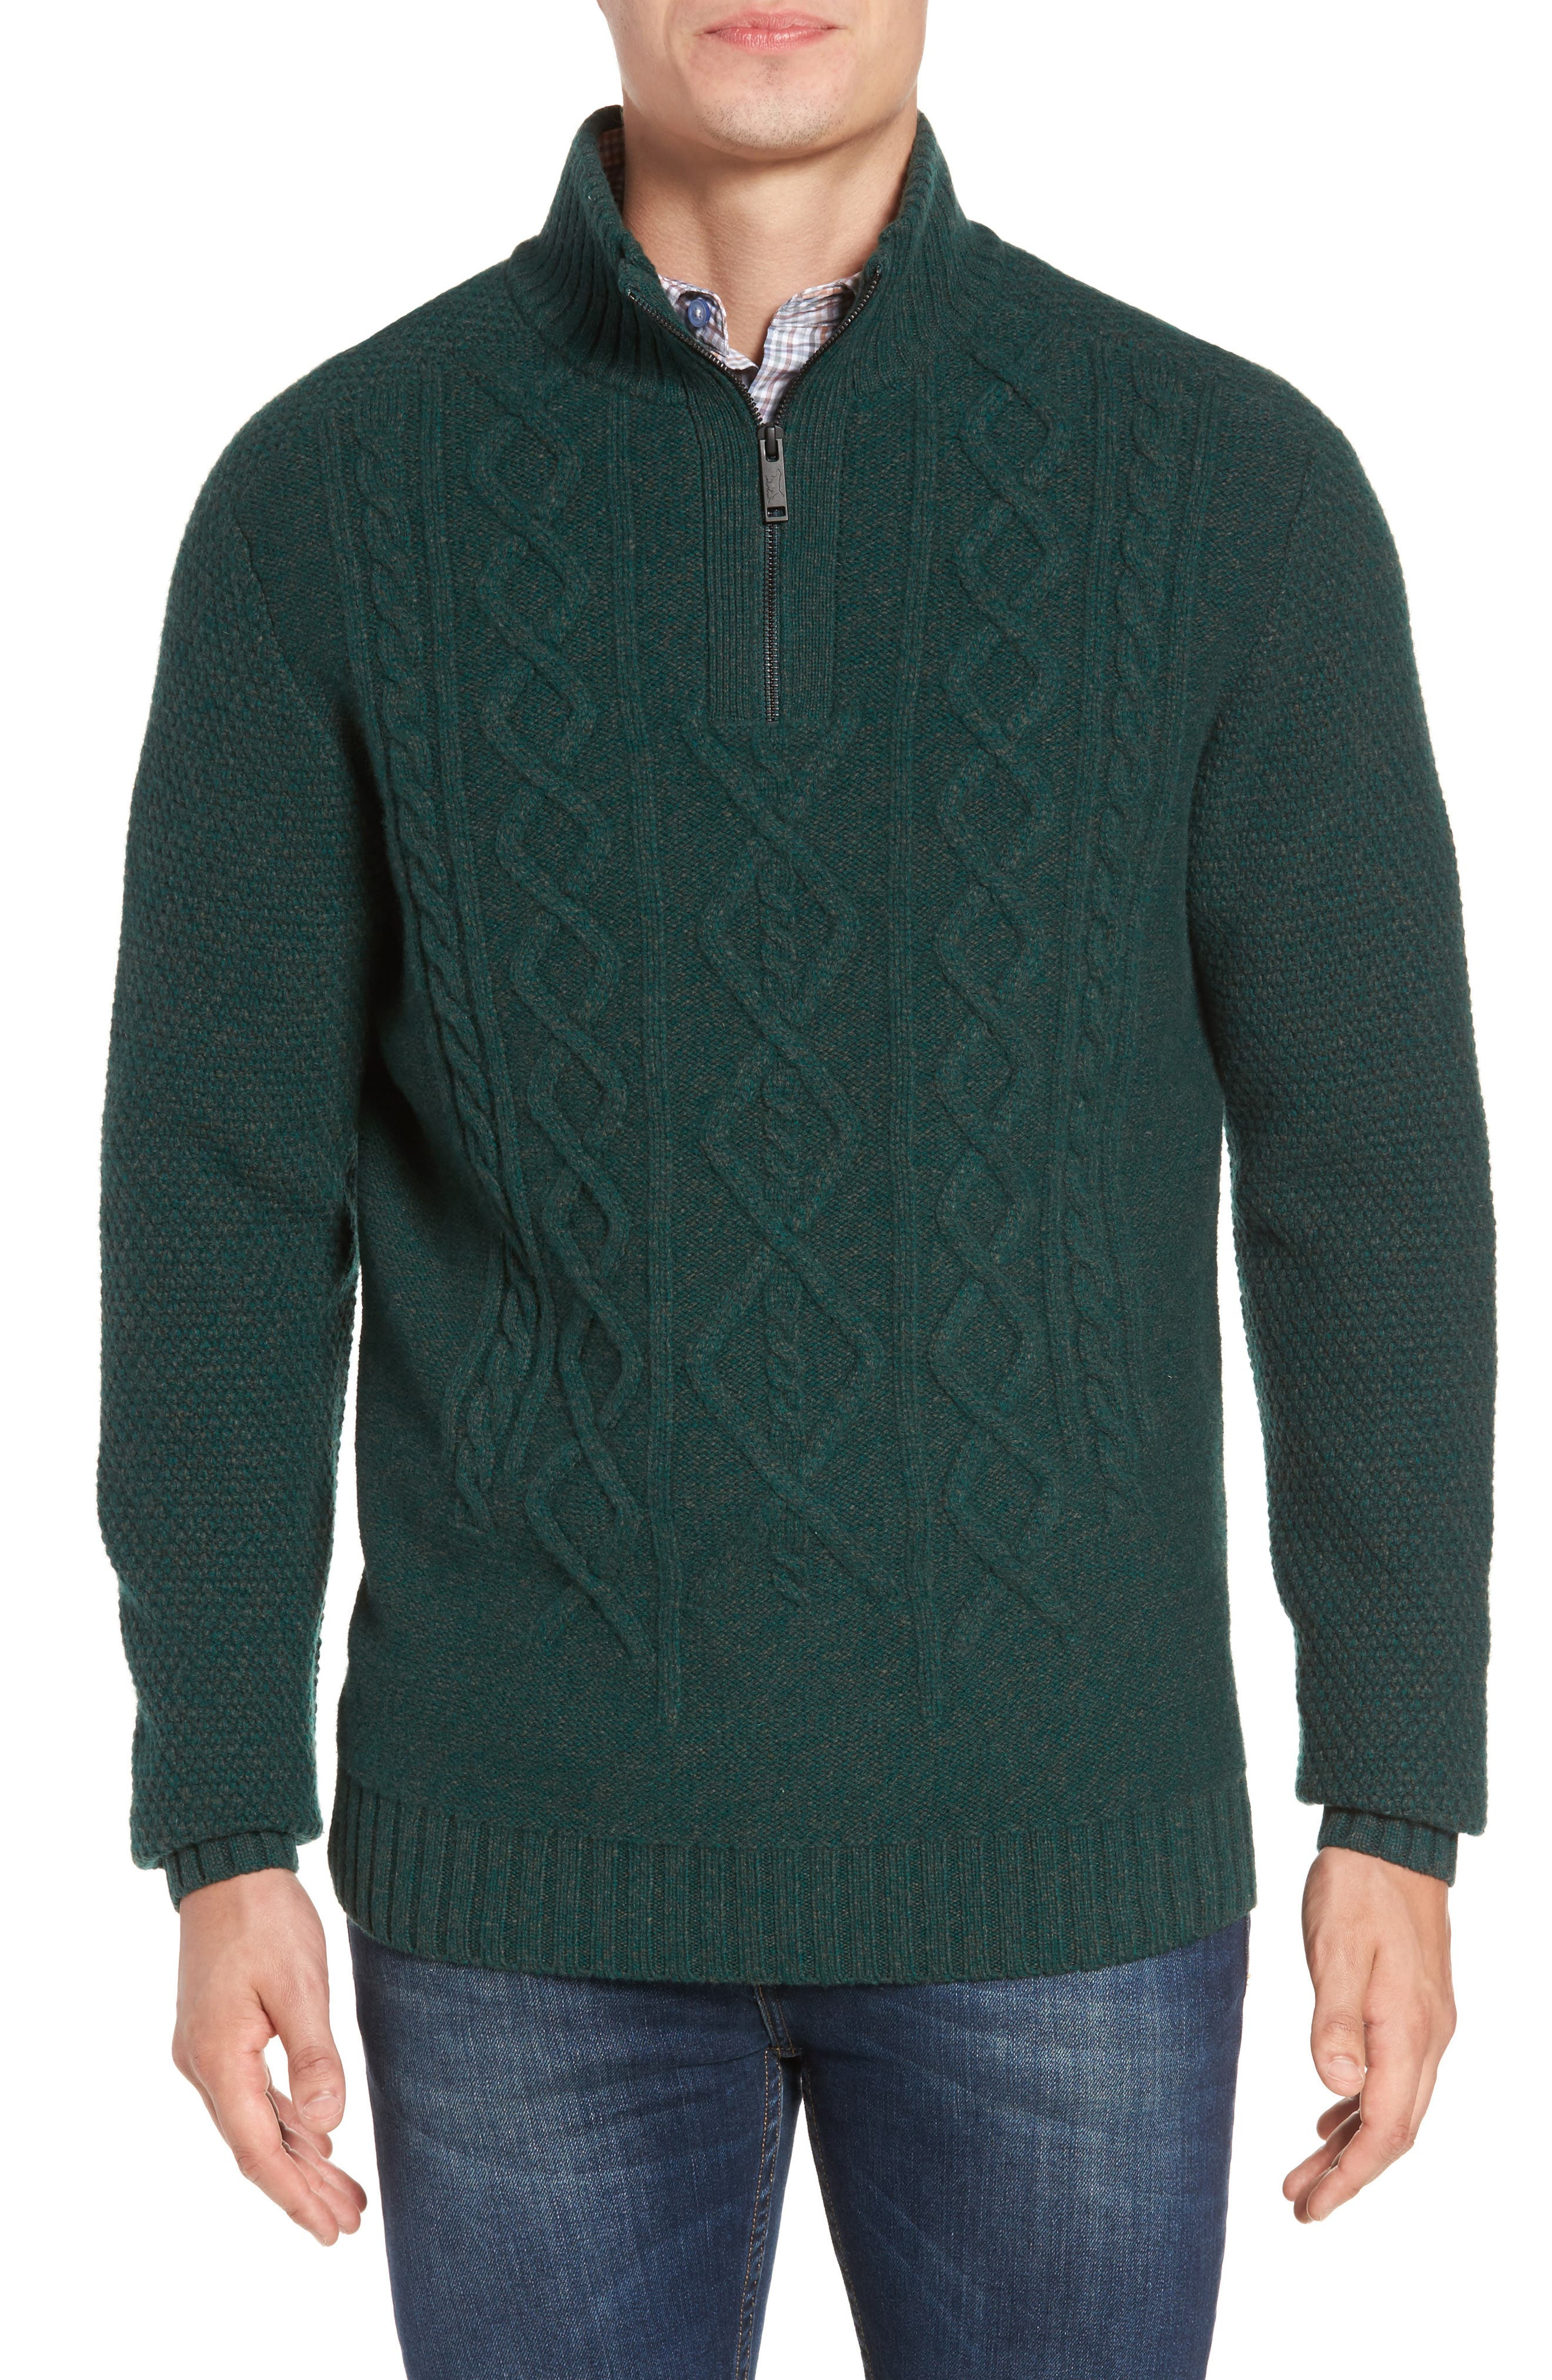 Cape Scoresby Wool Sweater,                             Main thumbnail 2, color,